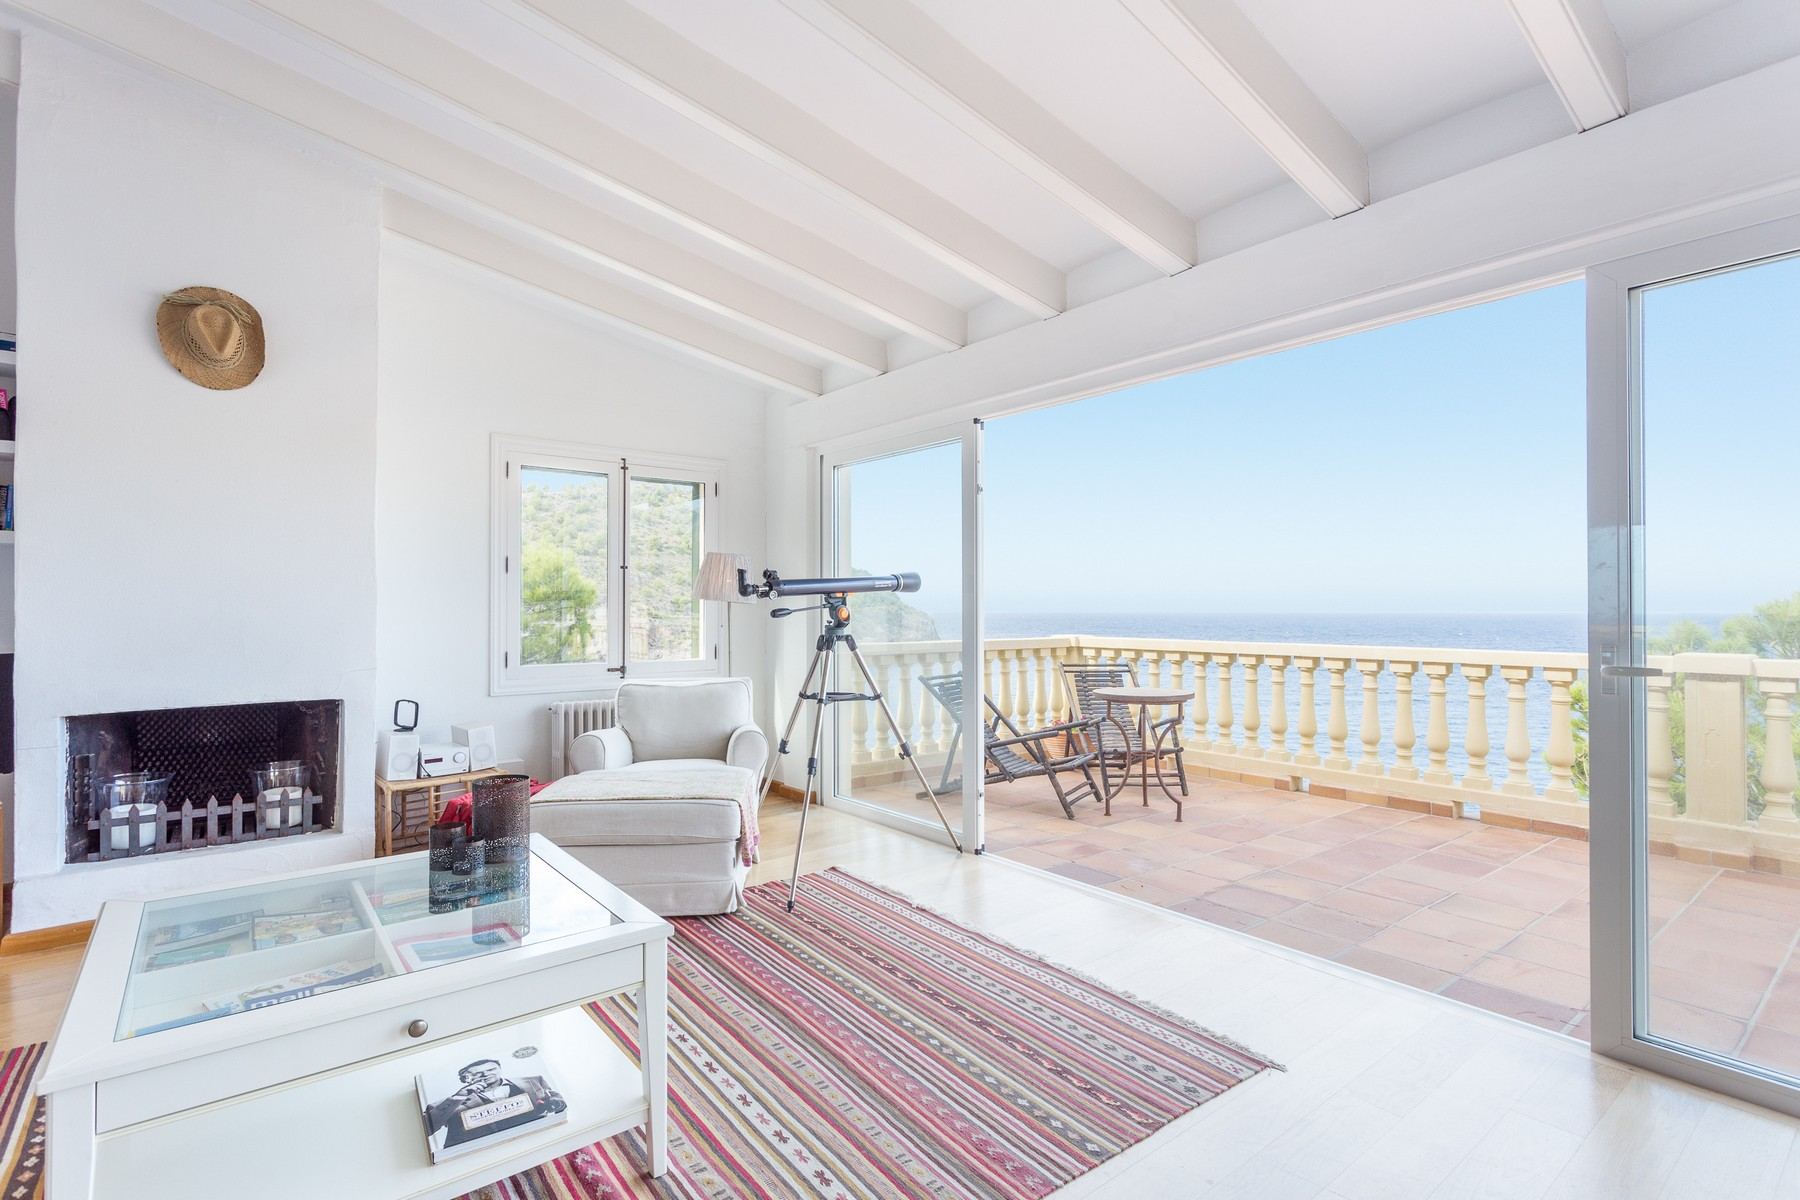 Single Family Home for Sale at Lovely villa first line in Port de Soller Other Balearic Islands, Balearic Islands, 07100 Spain